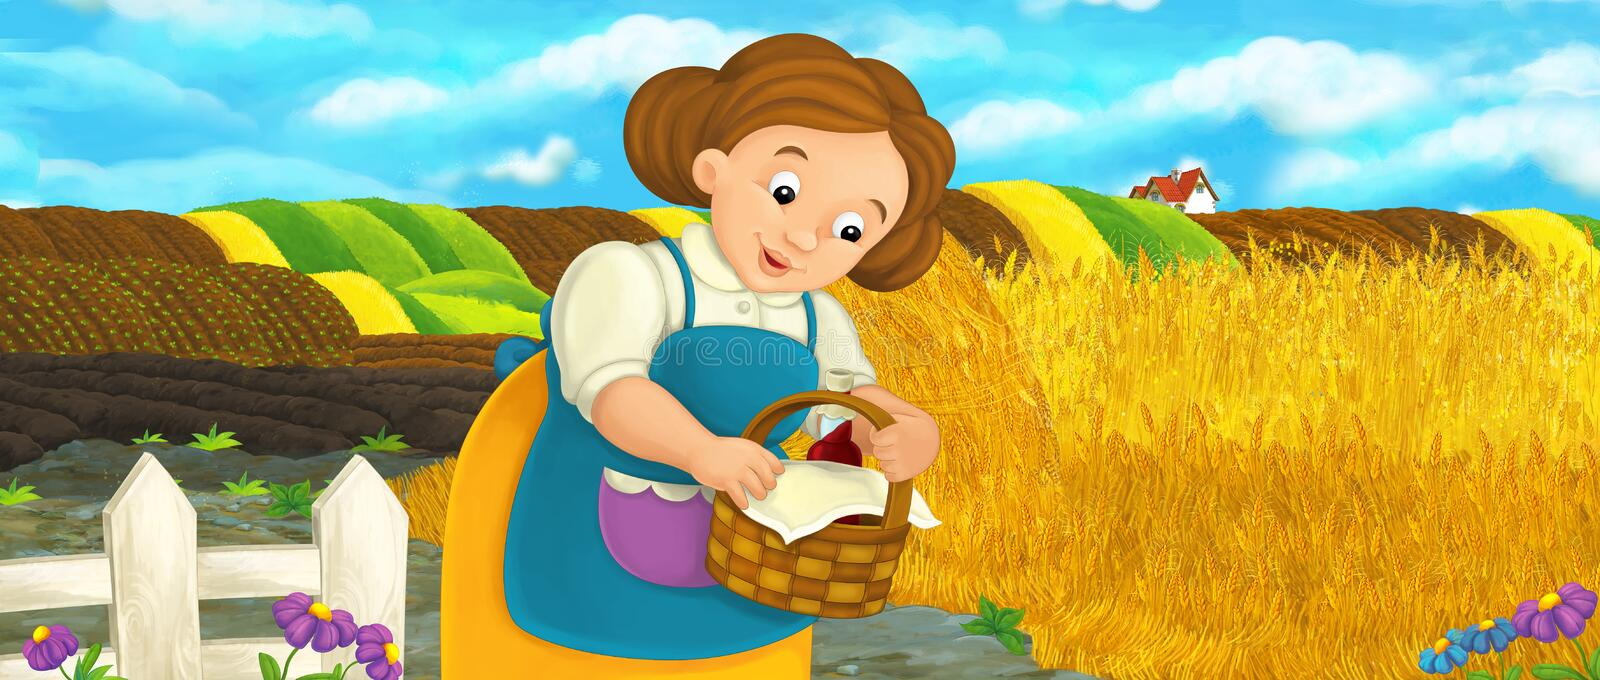 Cartoon happy farm scene with farm woman on the farm field with food basket. Happy and funny traditional illustration for children - scene for different usage stock illustration